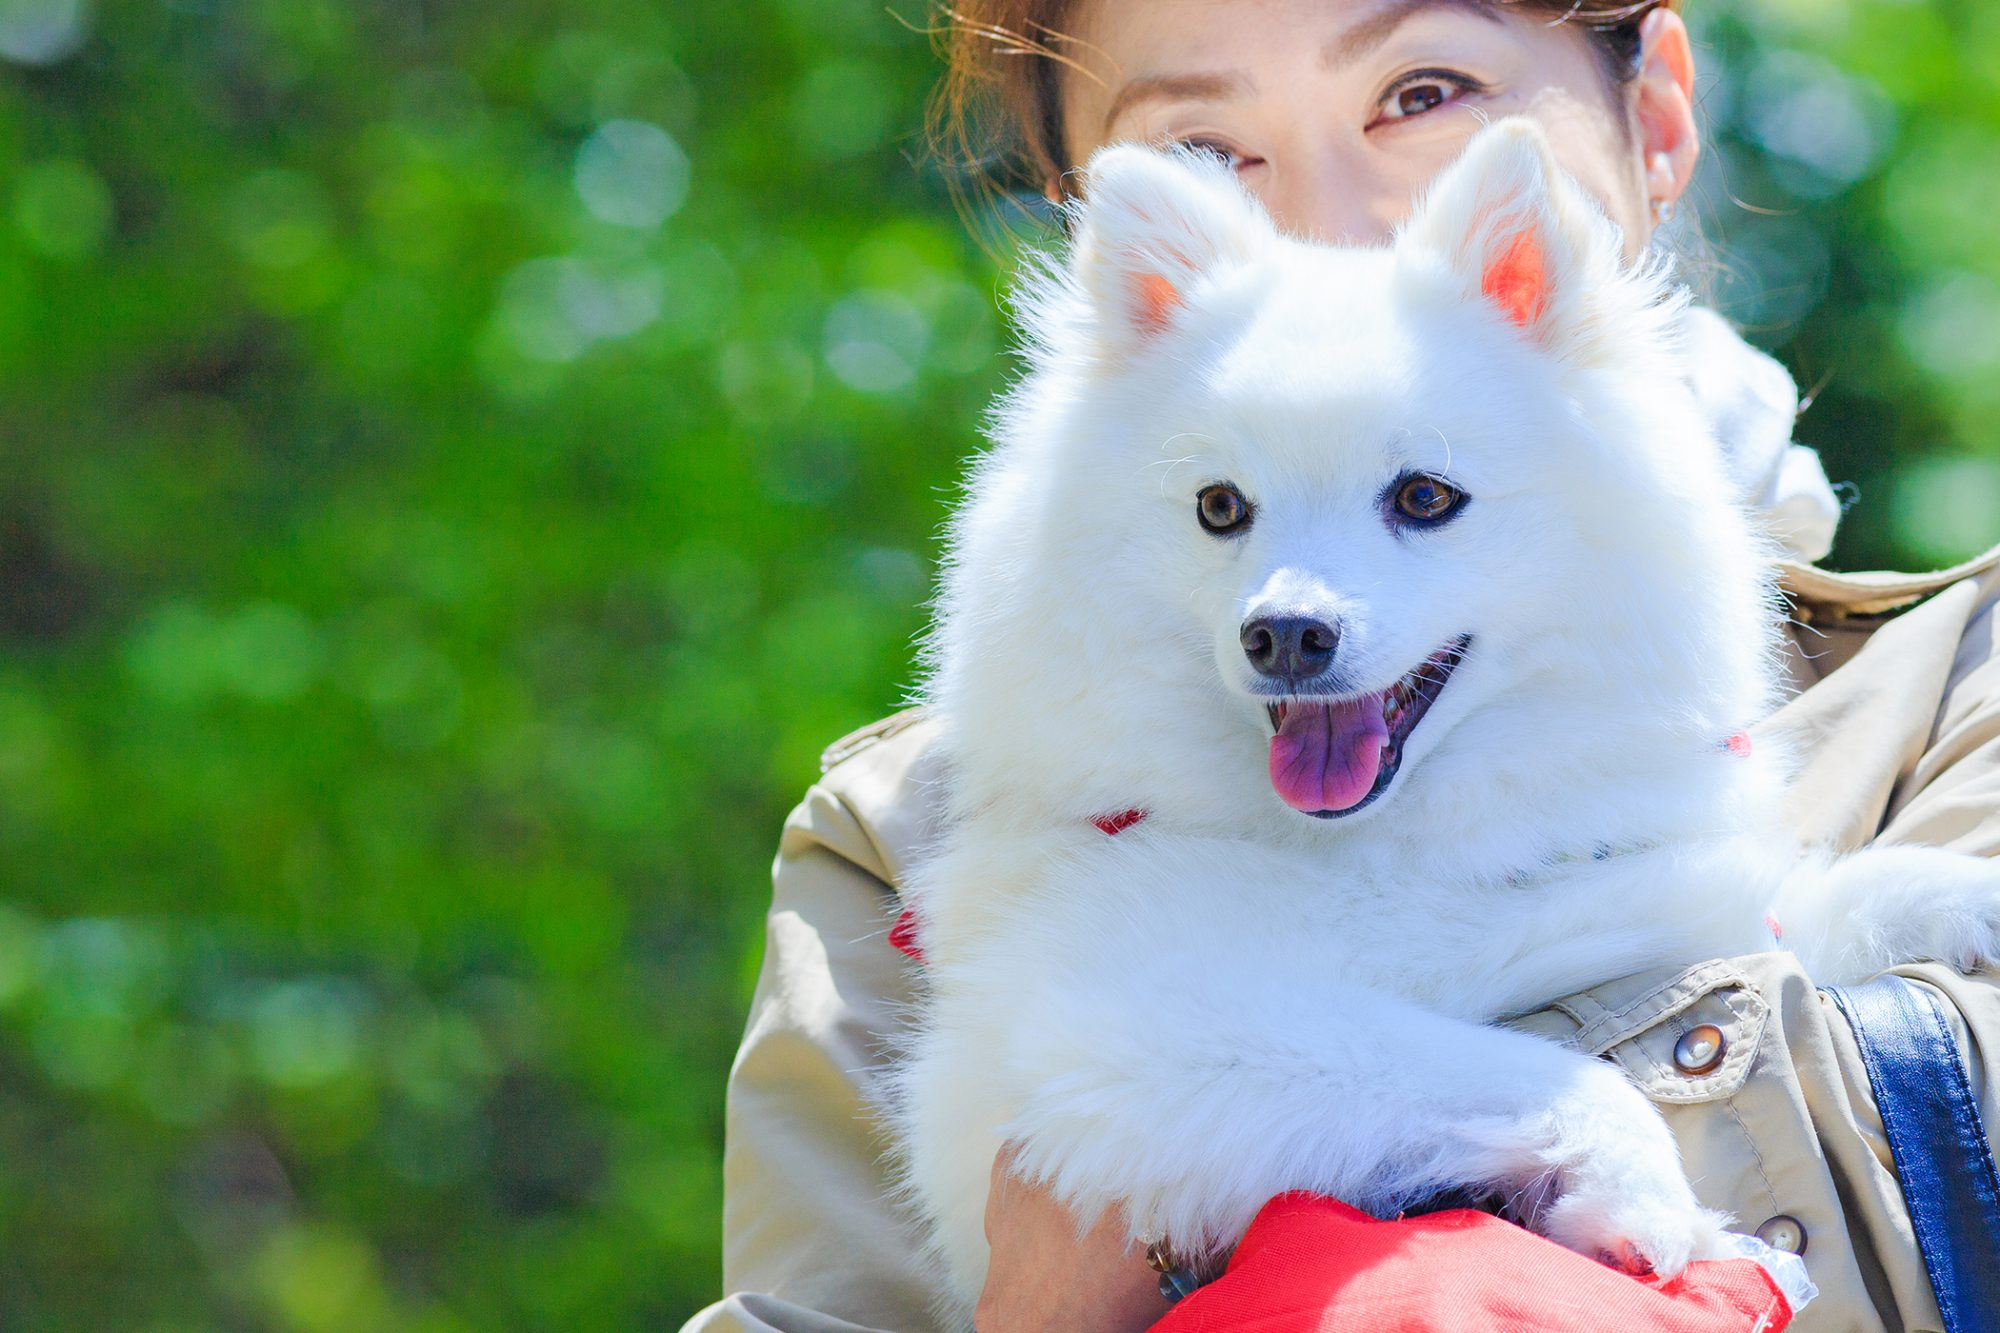 Japanese Spitz is carried by woman outside